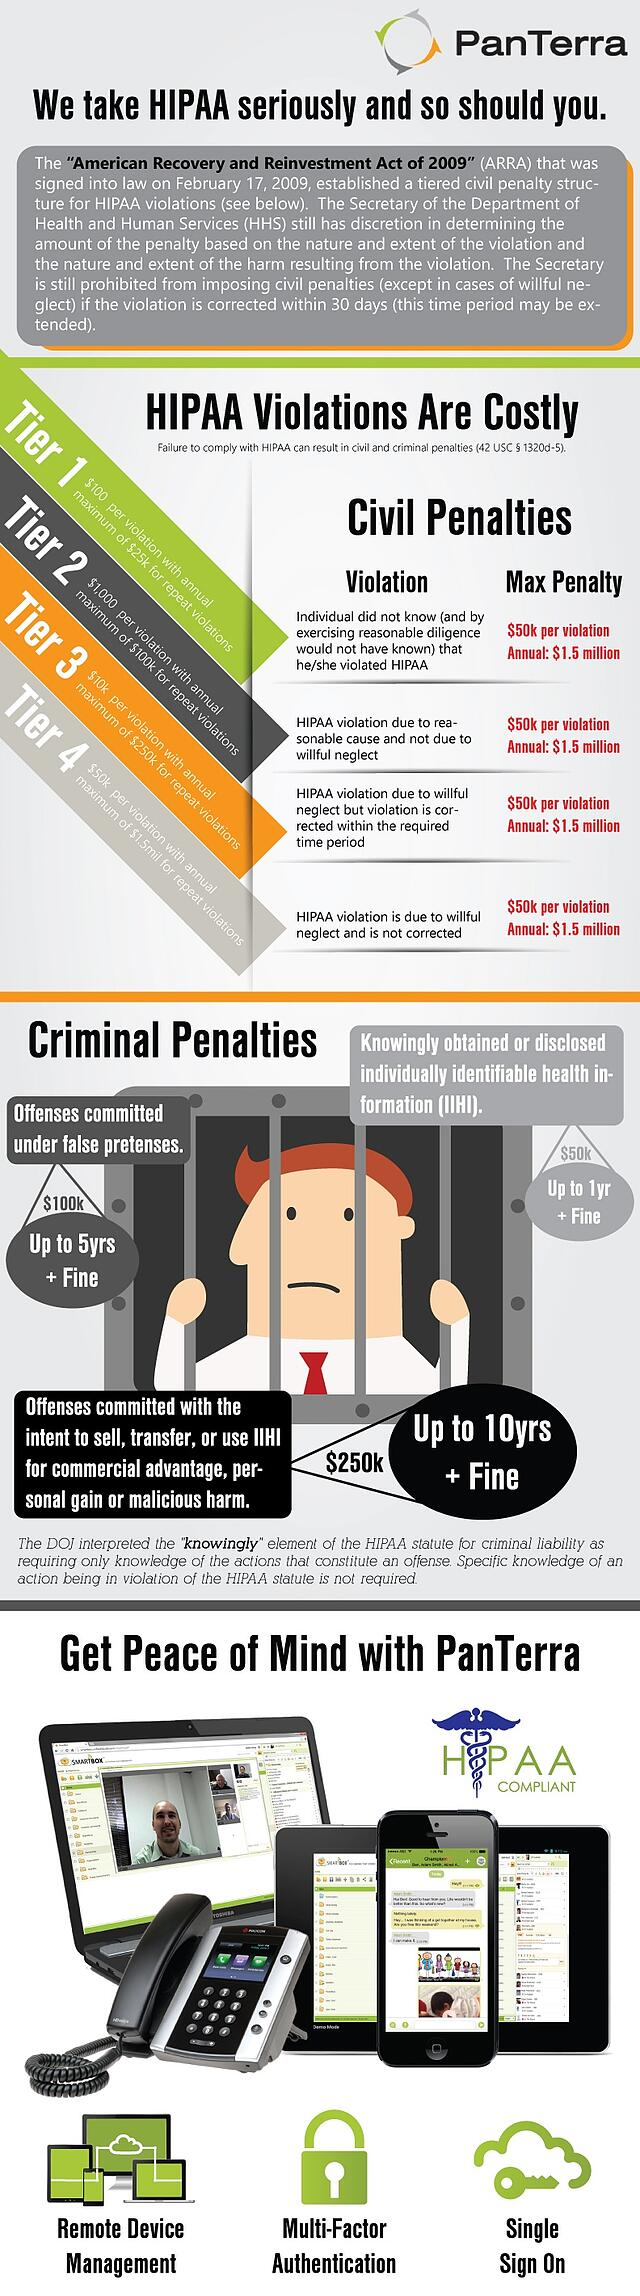 hipaa-infographic-civil-criminal-penalties-peace-of-mind.jpg